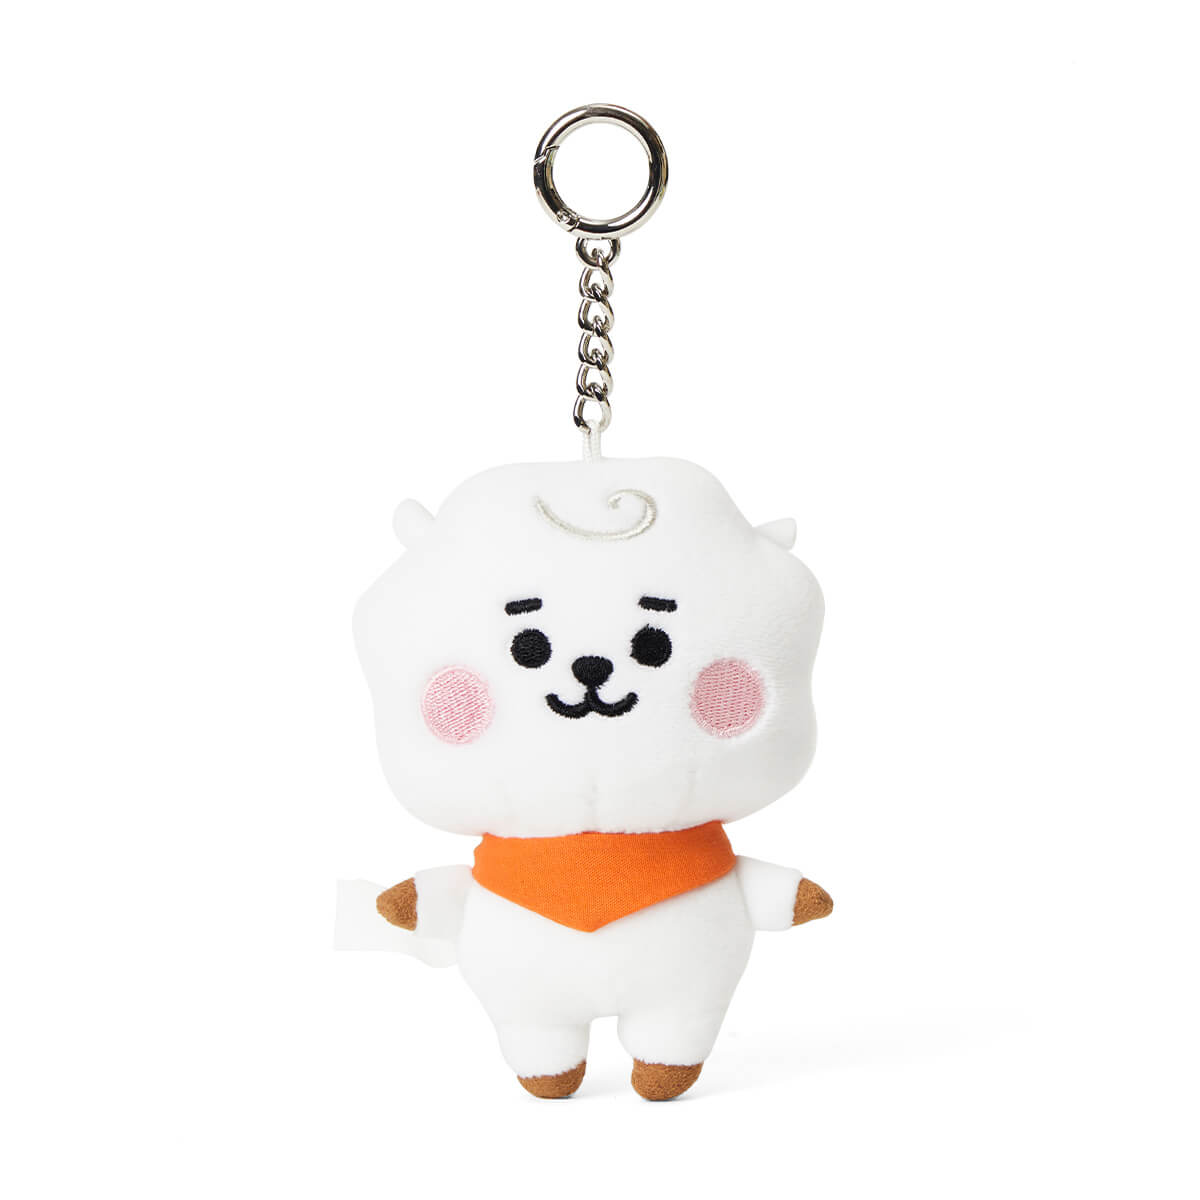 BT21 RJ Baby Body Bag Charm 4.3""